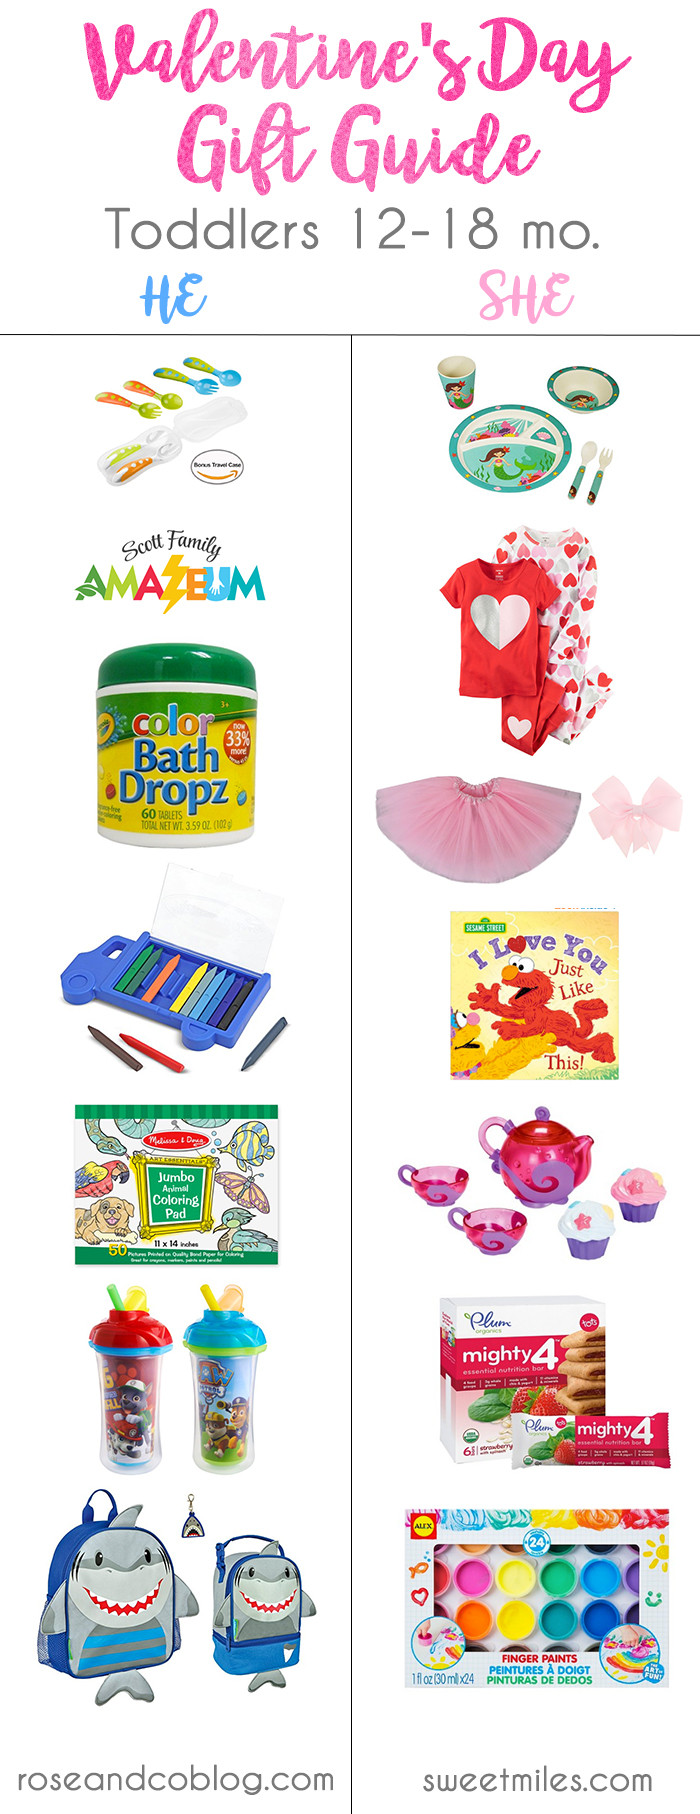 Toddler Valentines Day Gift Ideas  Valentine s Day Gift Guide for Toddlers 12 18 Months